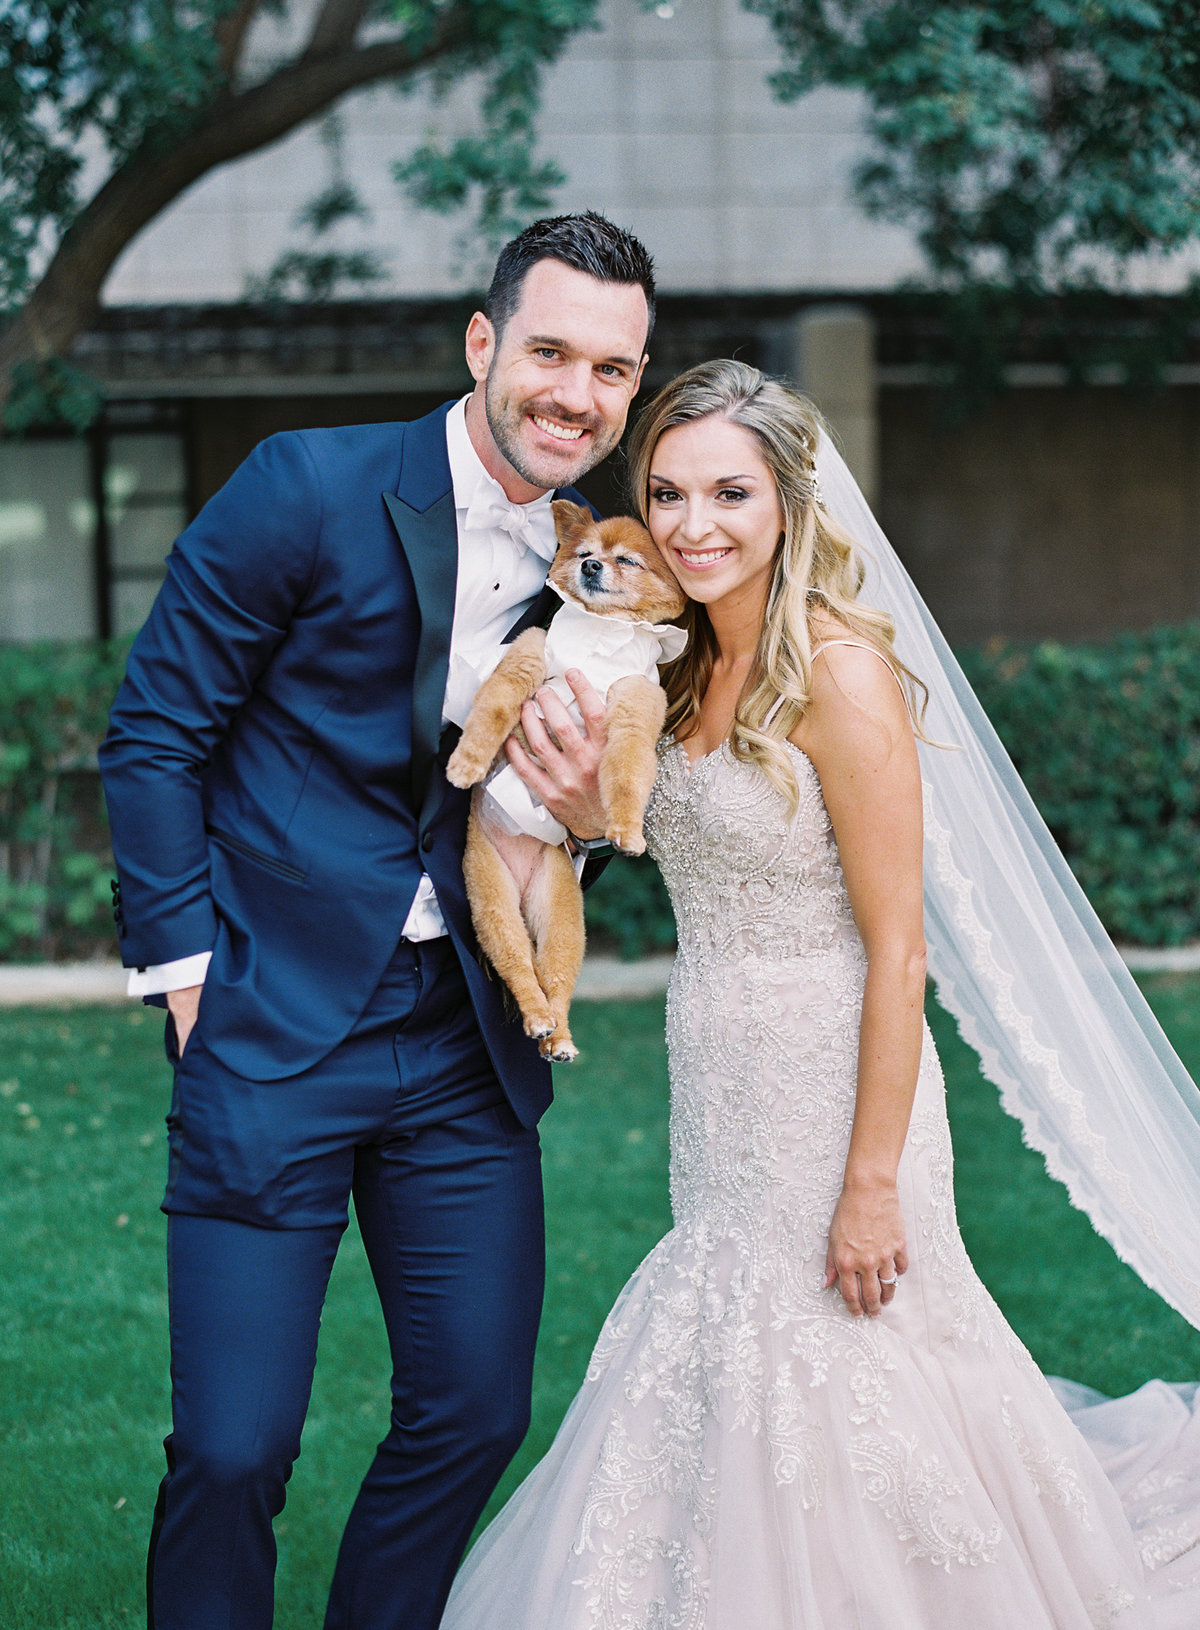 Arizona Biltmore Wedding - Mary Claire Photography-48